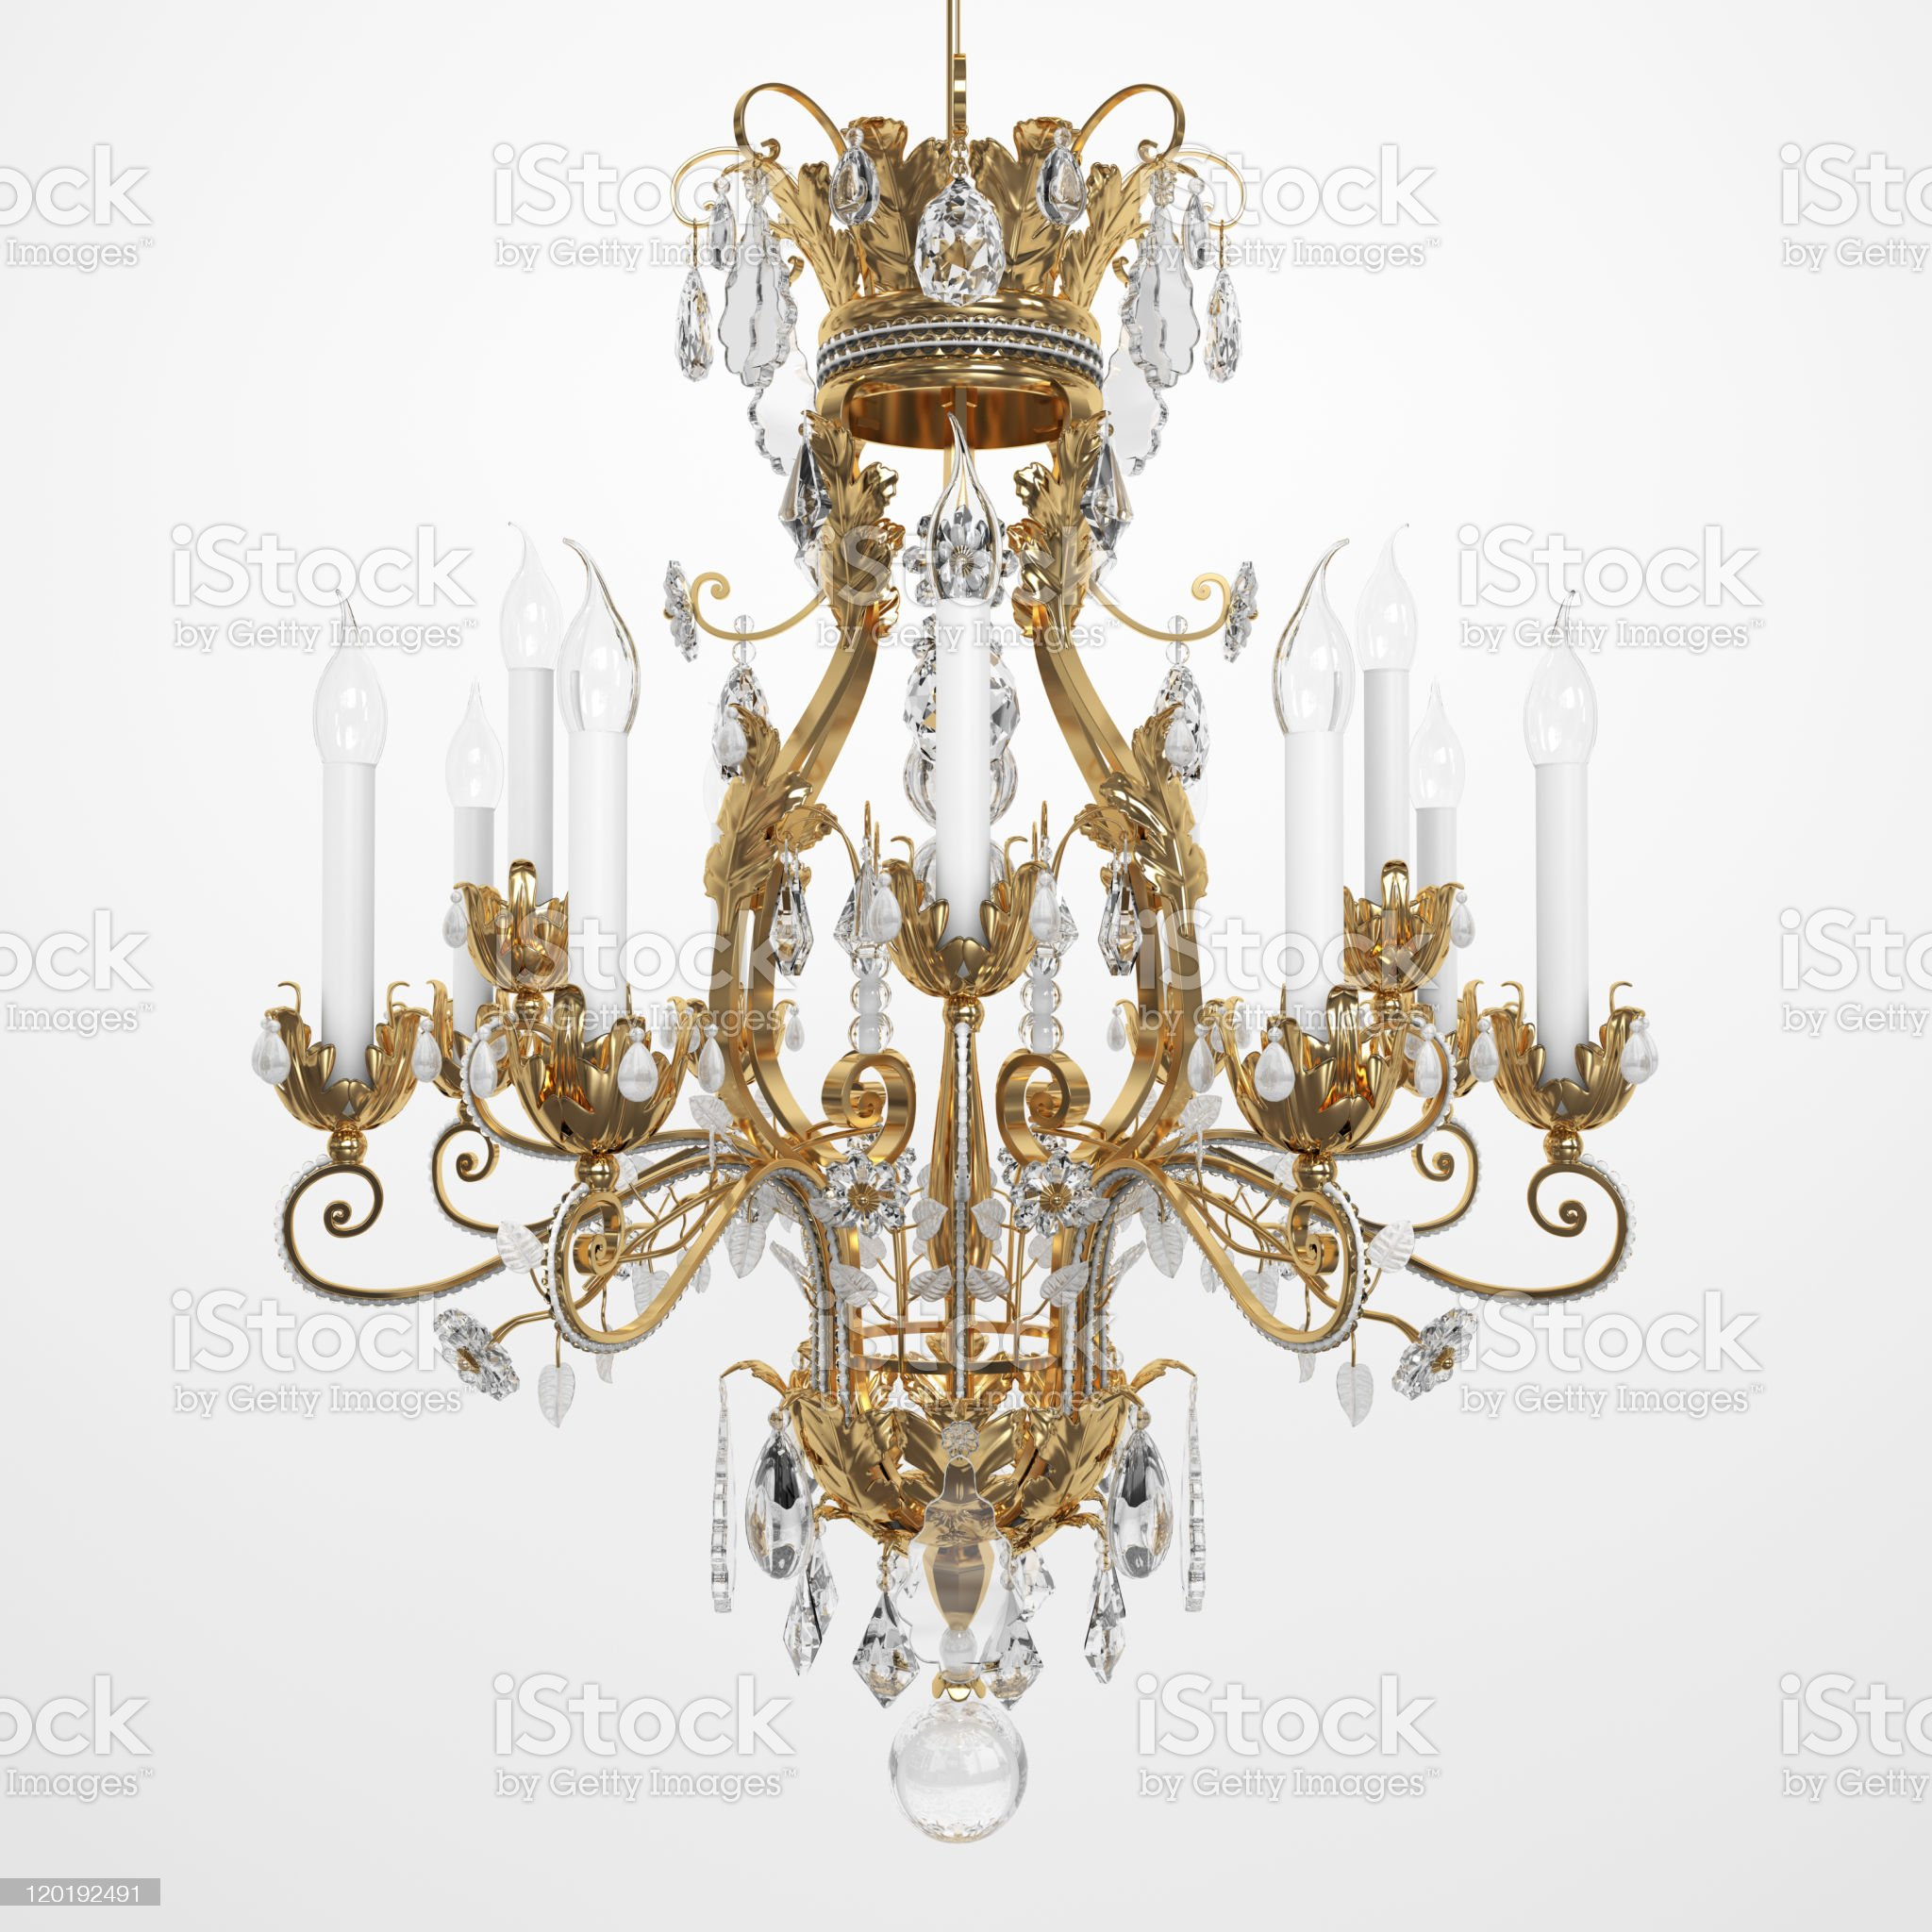 Brass and glass chandelier with white candles royalty-free stock photo